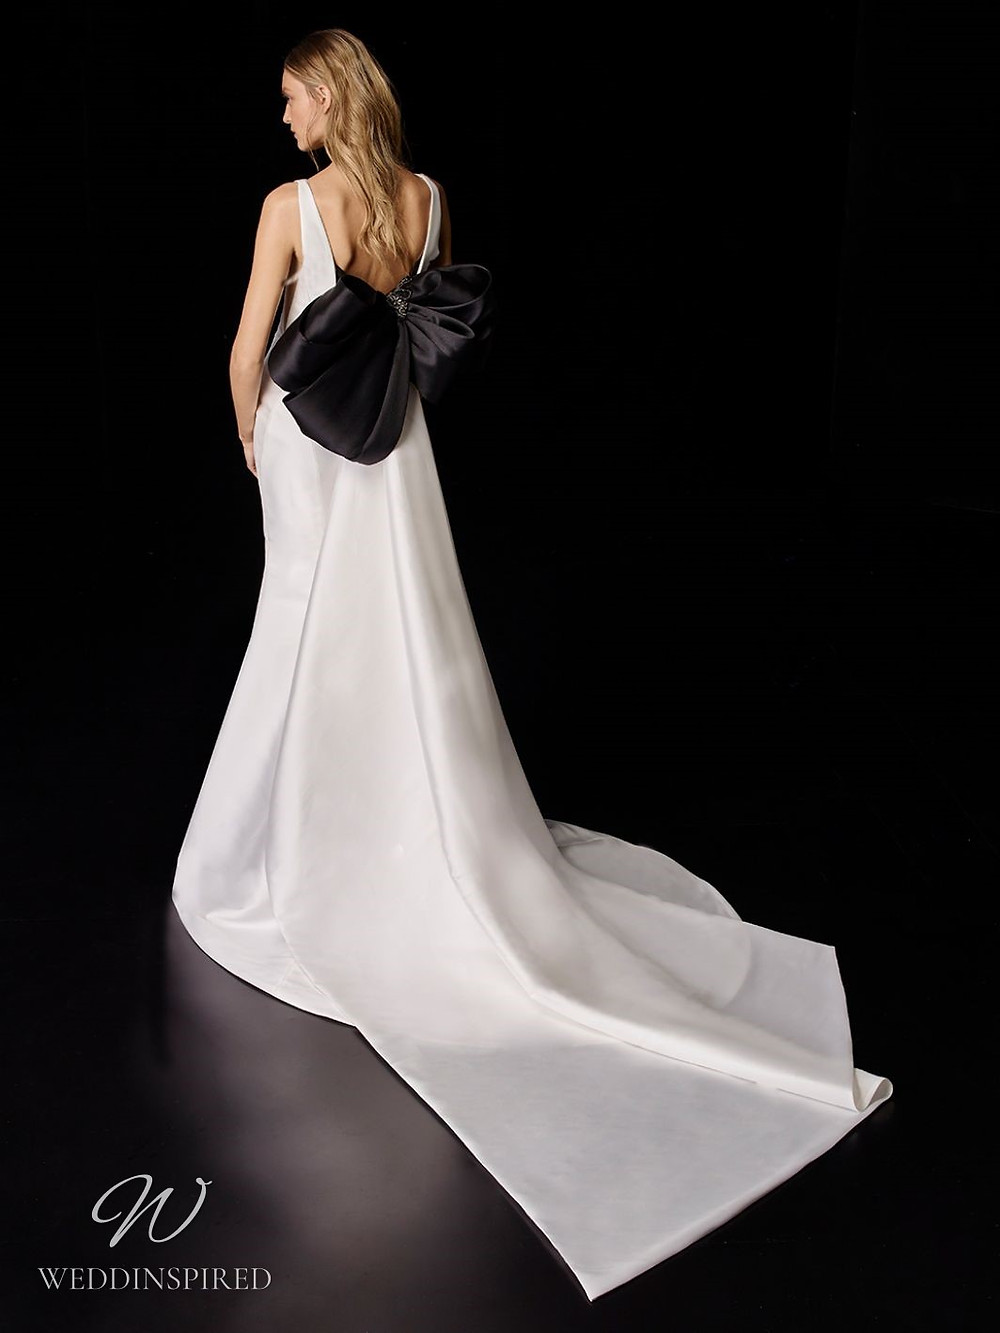 An Enzoani silk mermaid wedding dress with a low back and a big black bow